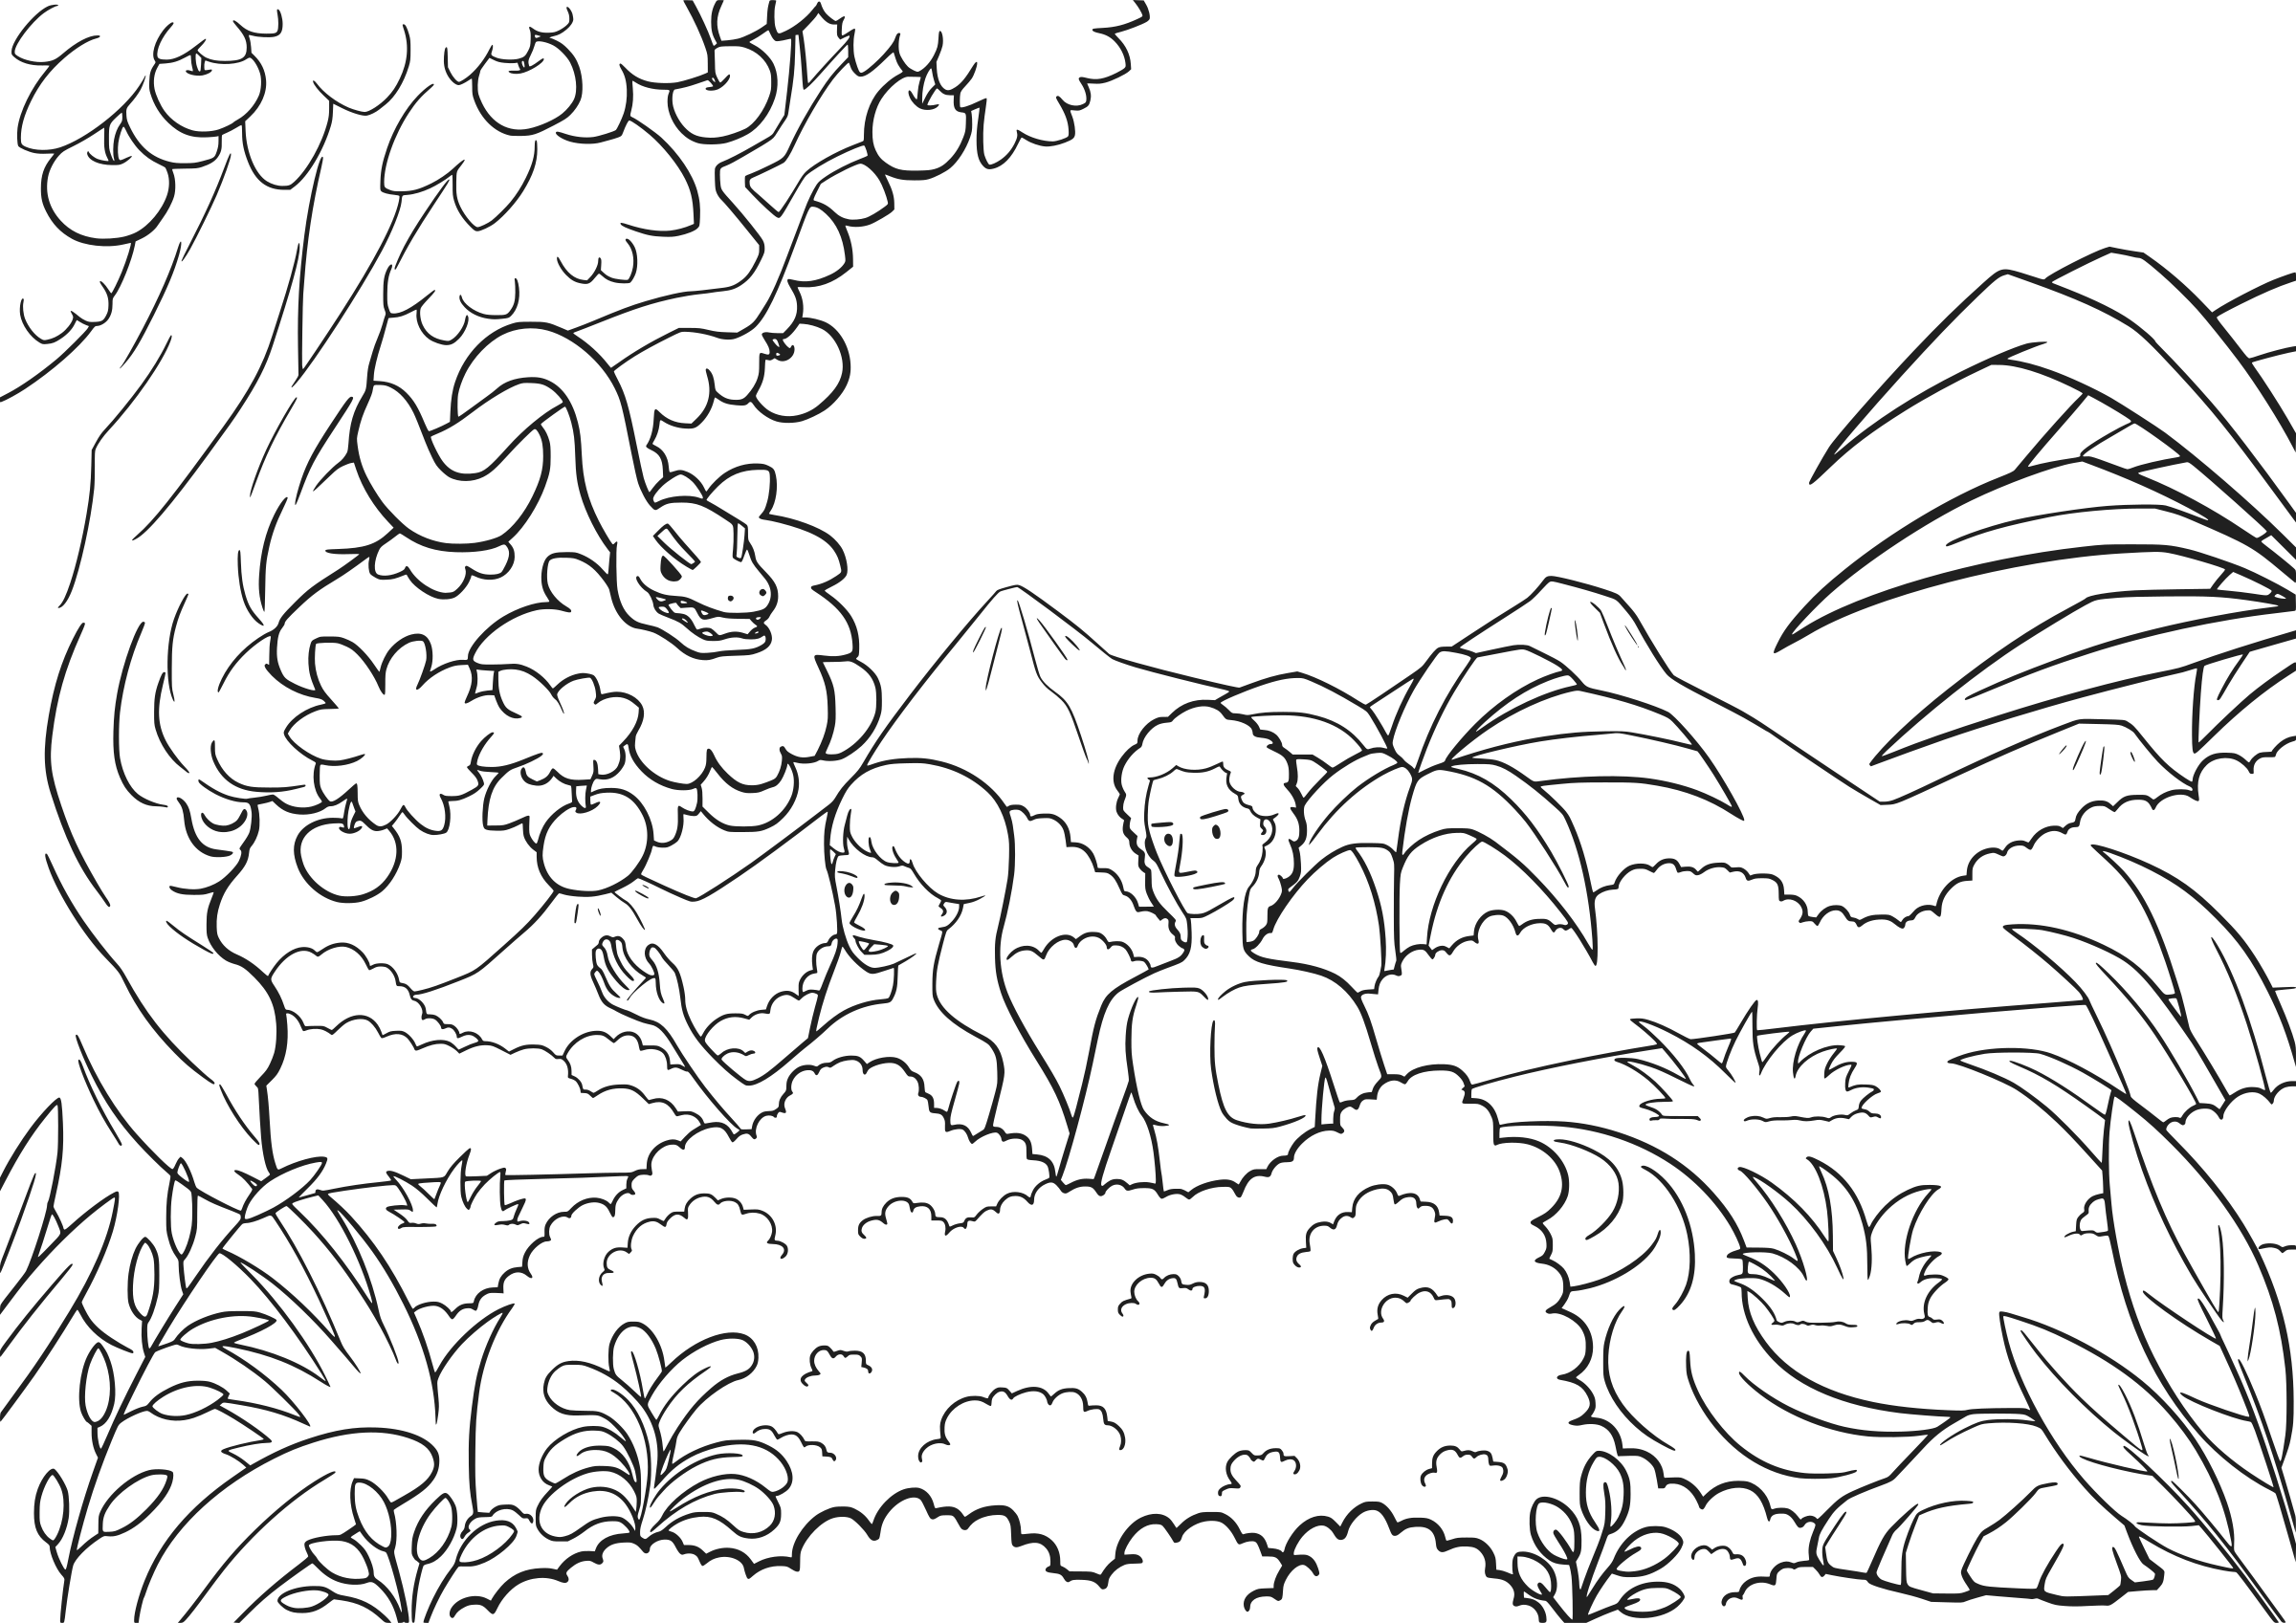 Clipart genesis 3 1 15 01 for Garden of eden coloring page